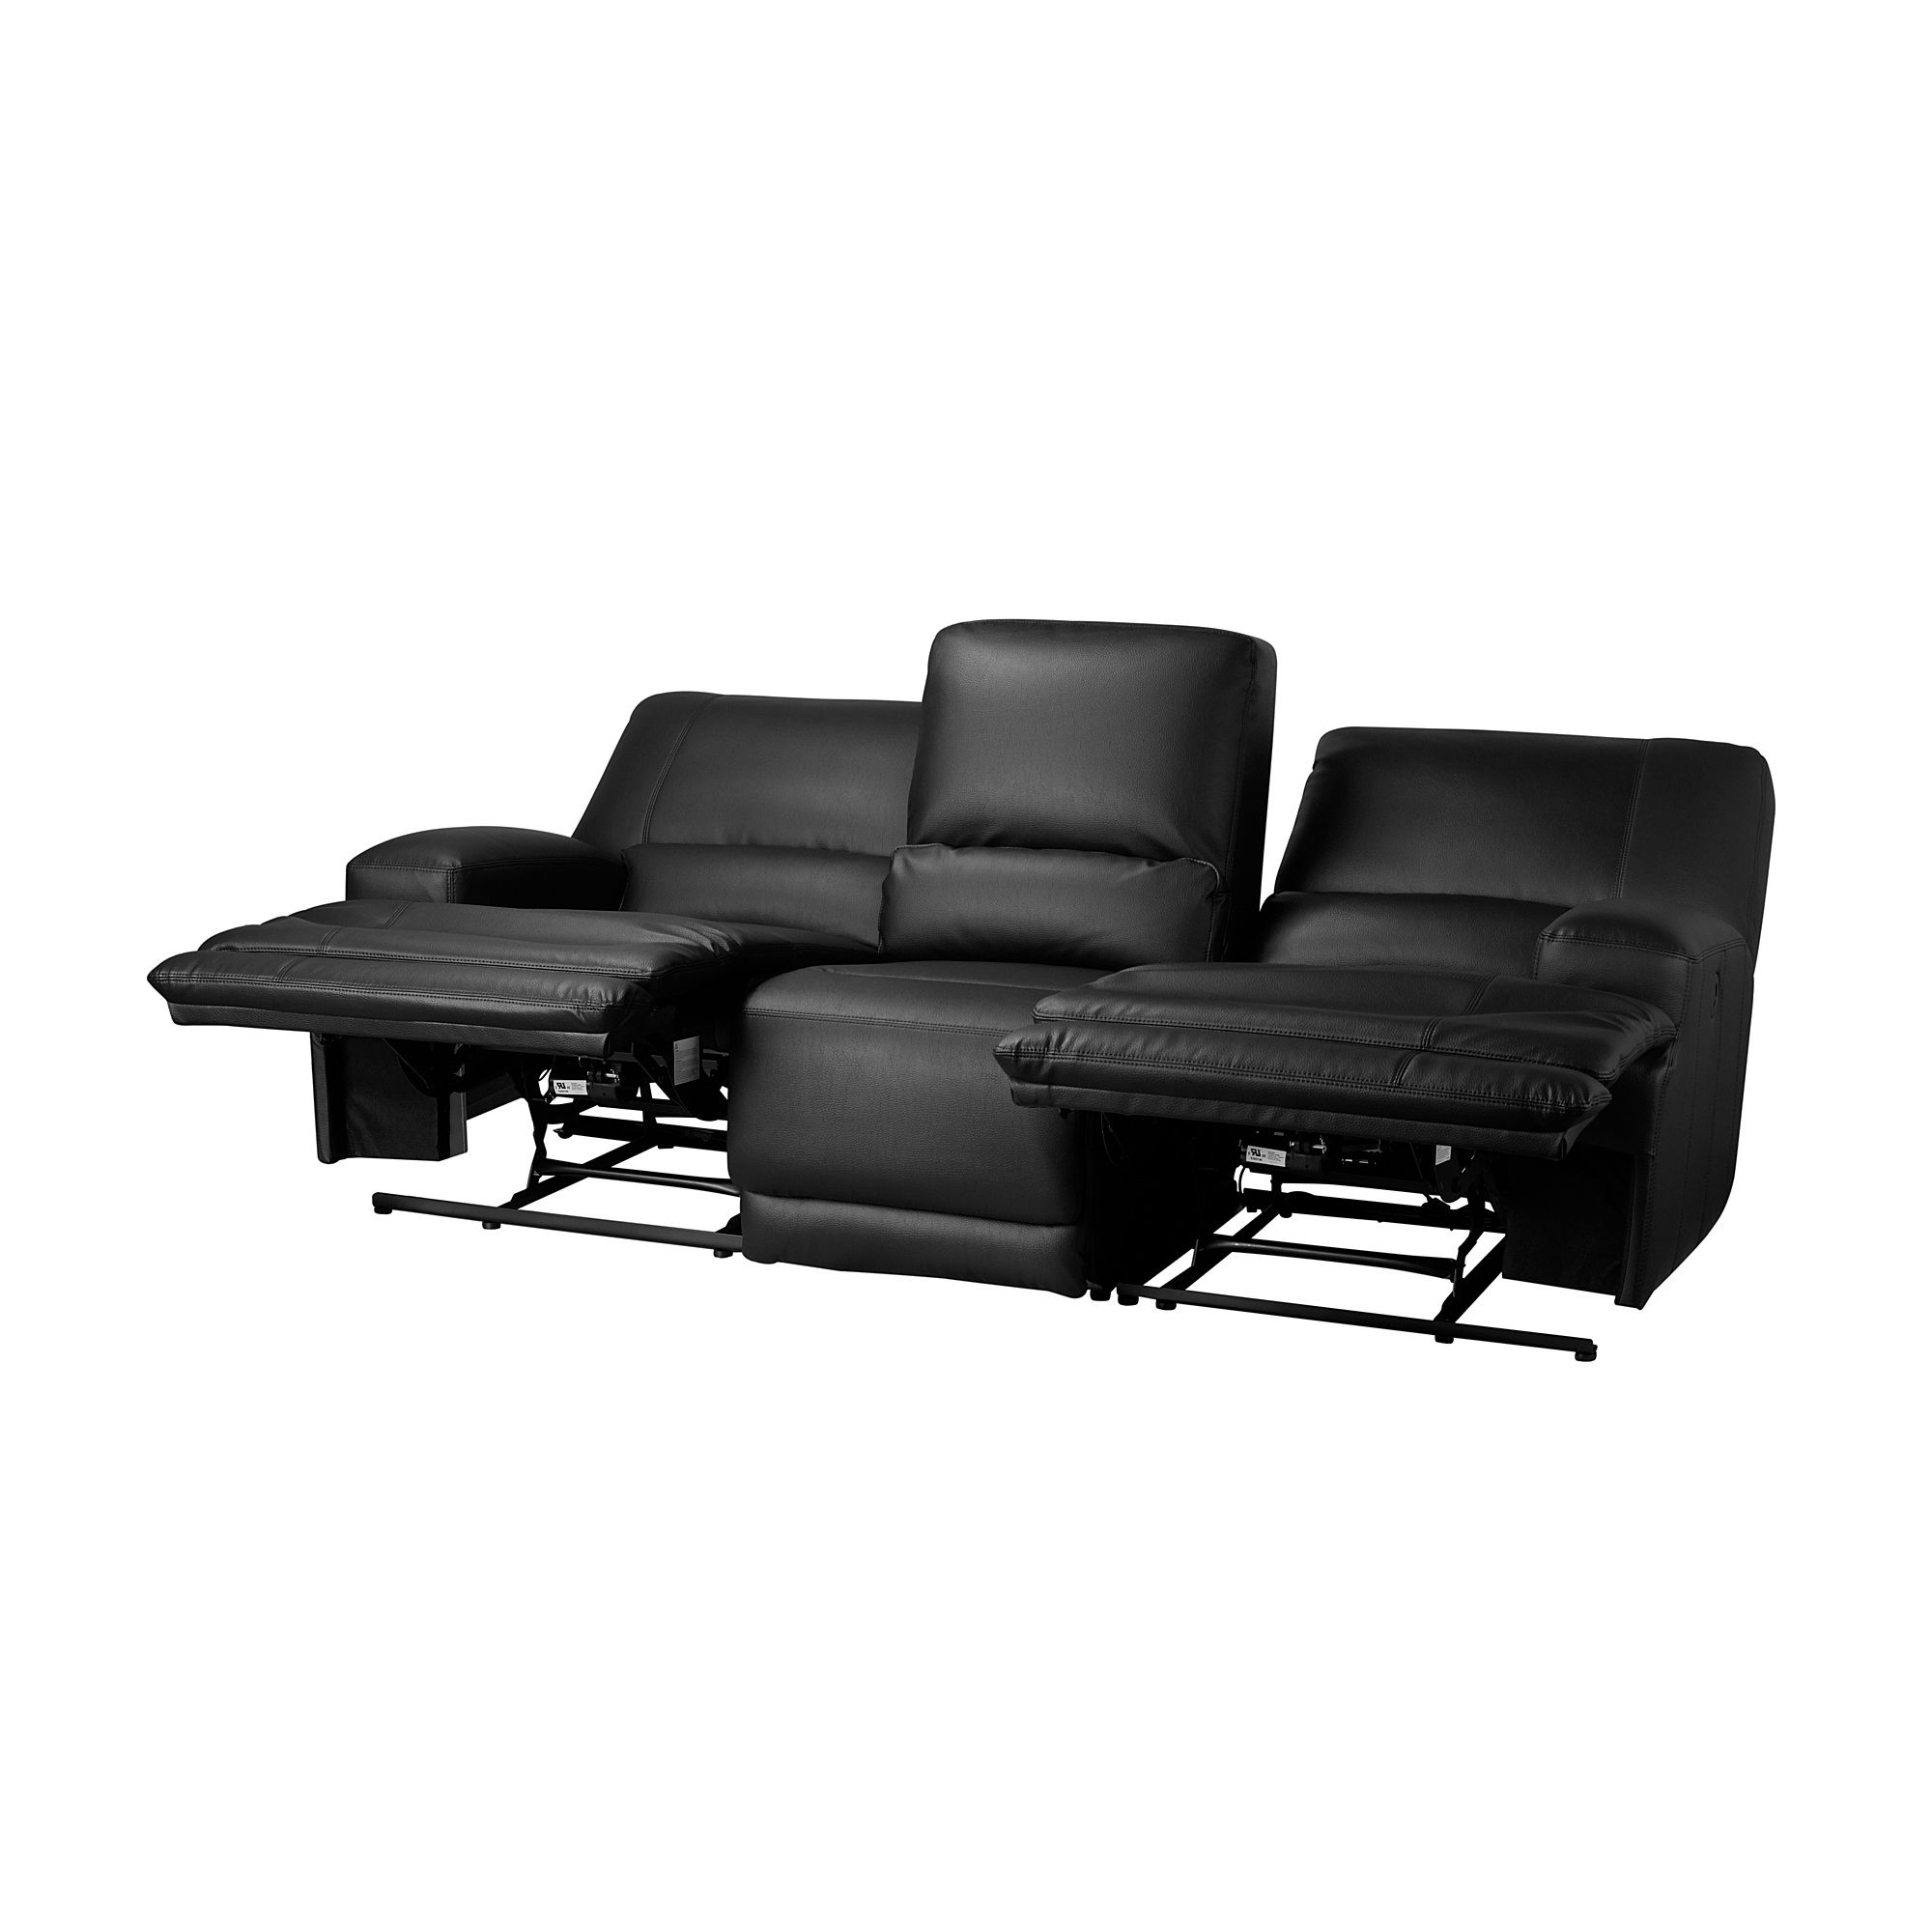 IKEA VÄNNÄS Sofa with adjustable seat/back Murum black